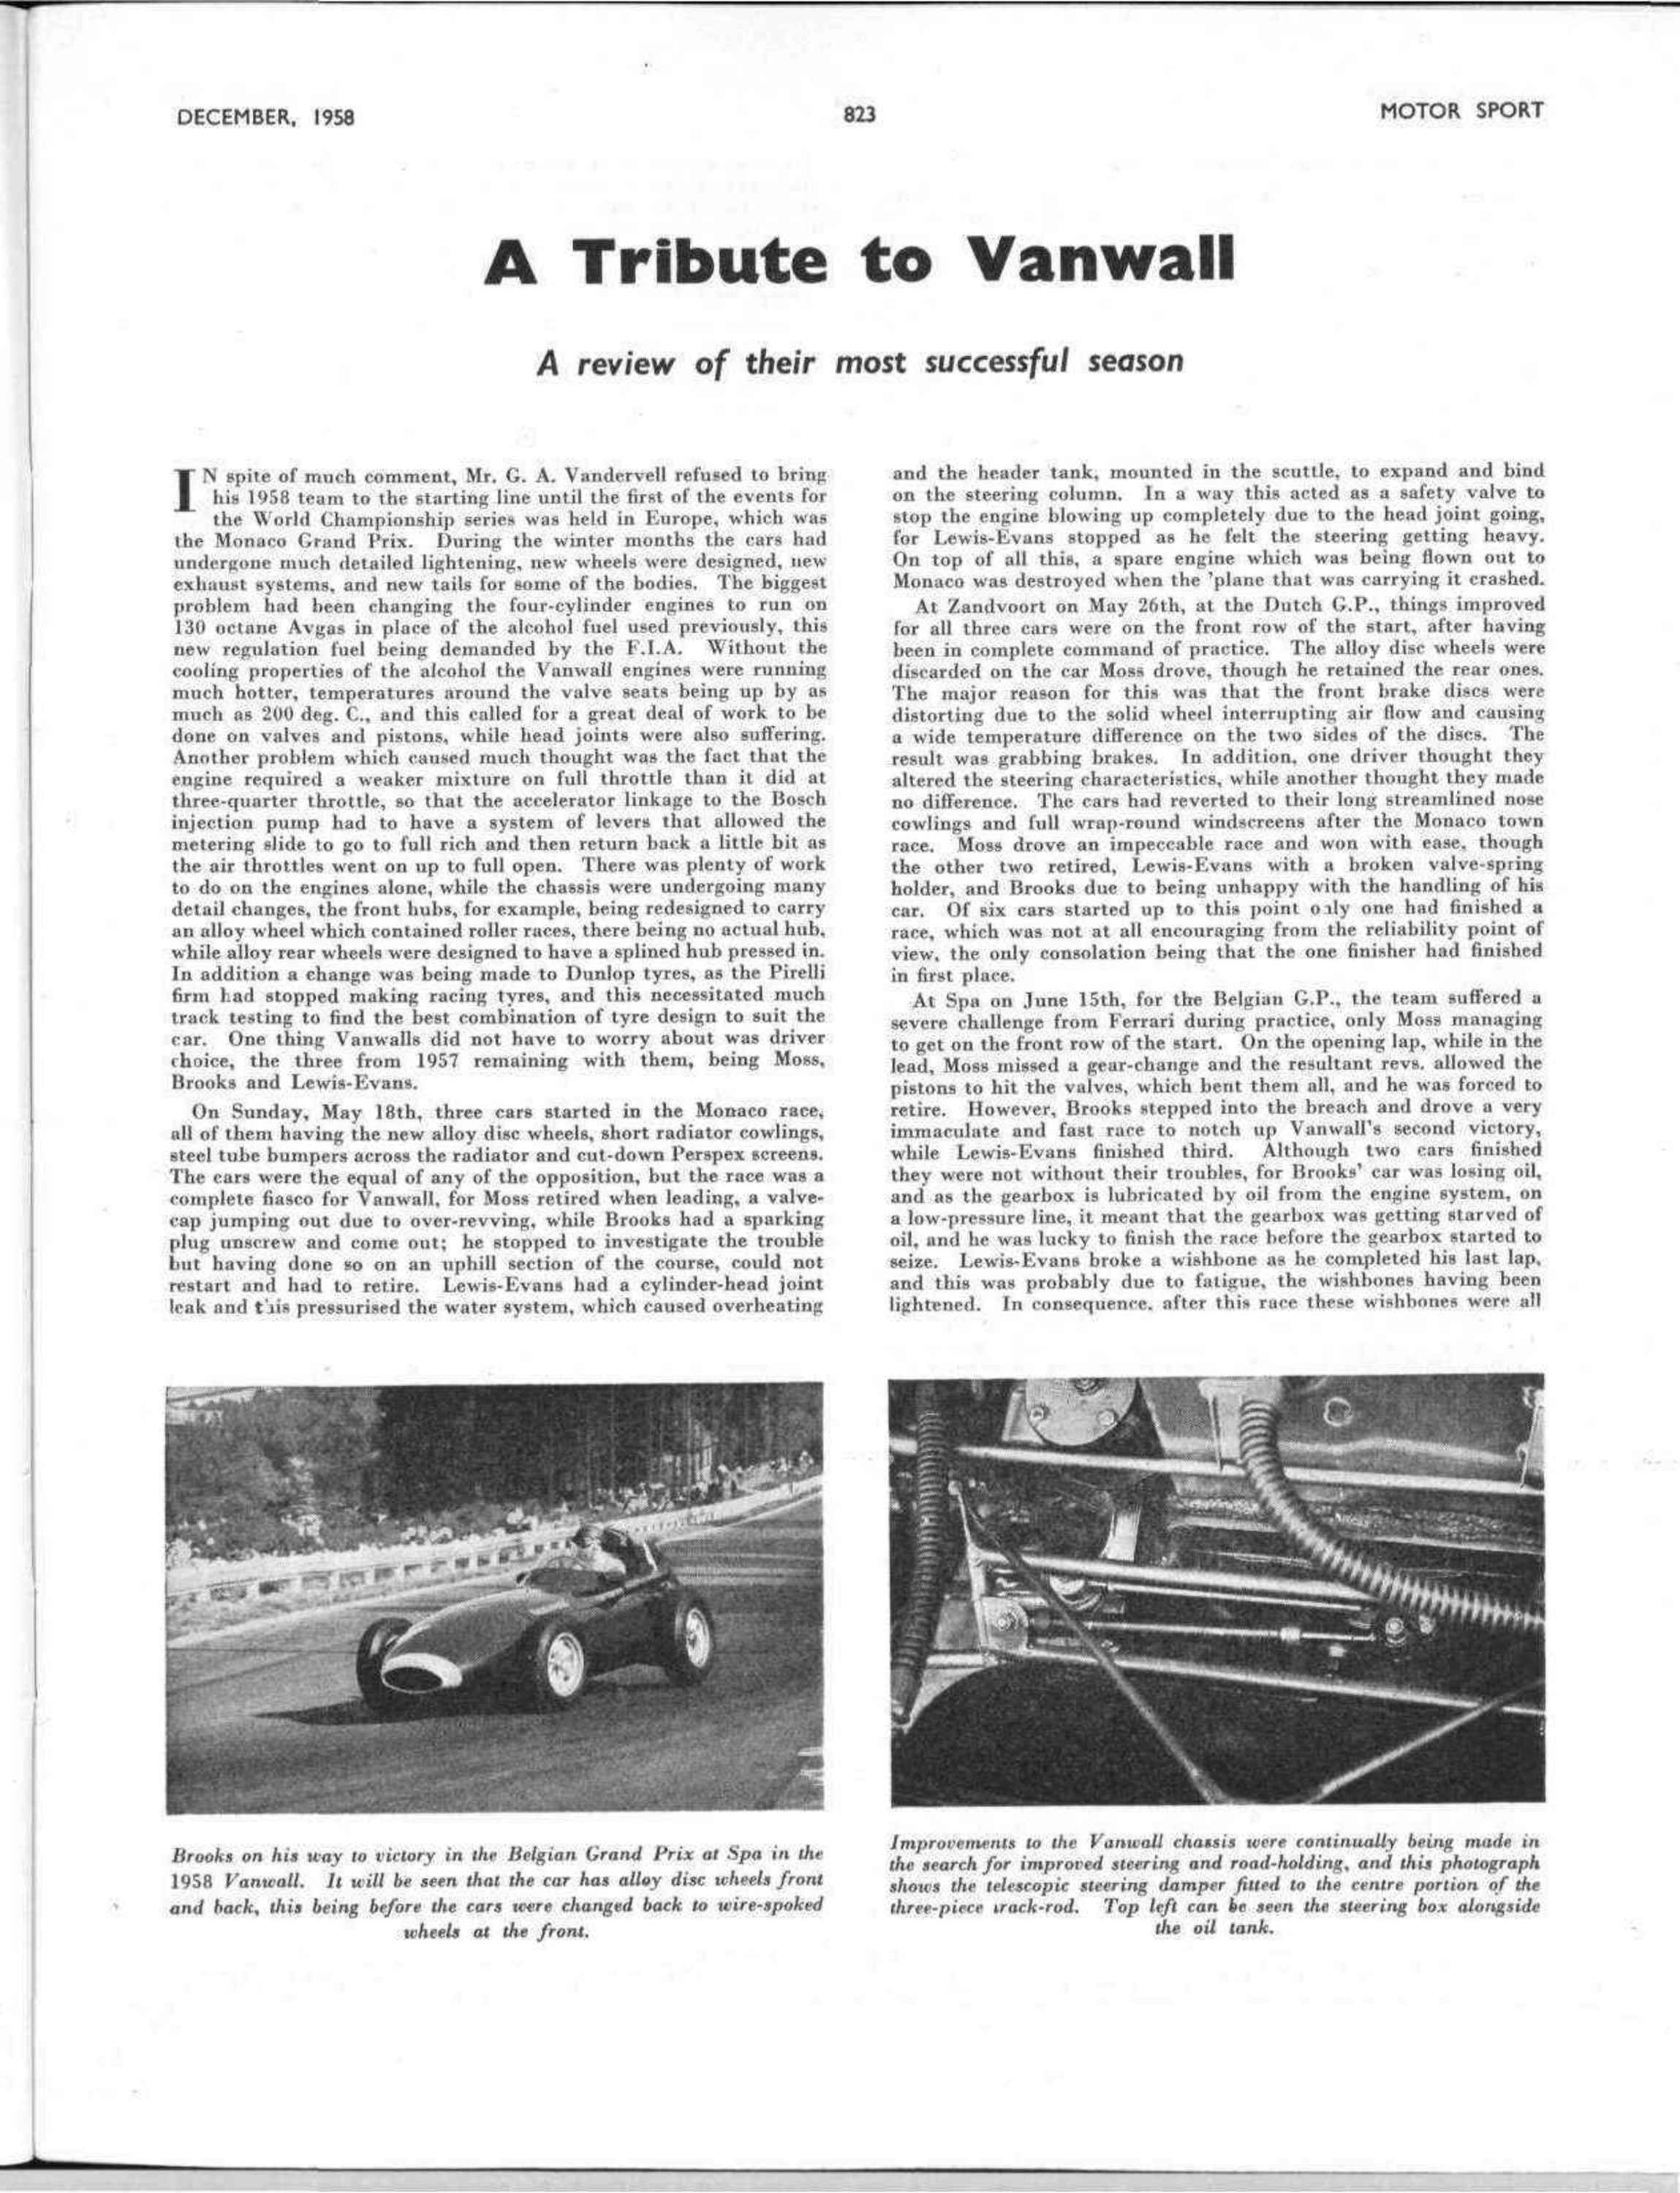 a tribute to vanwall image